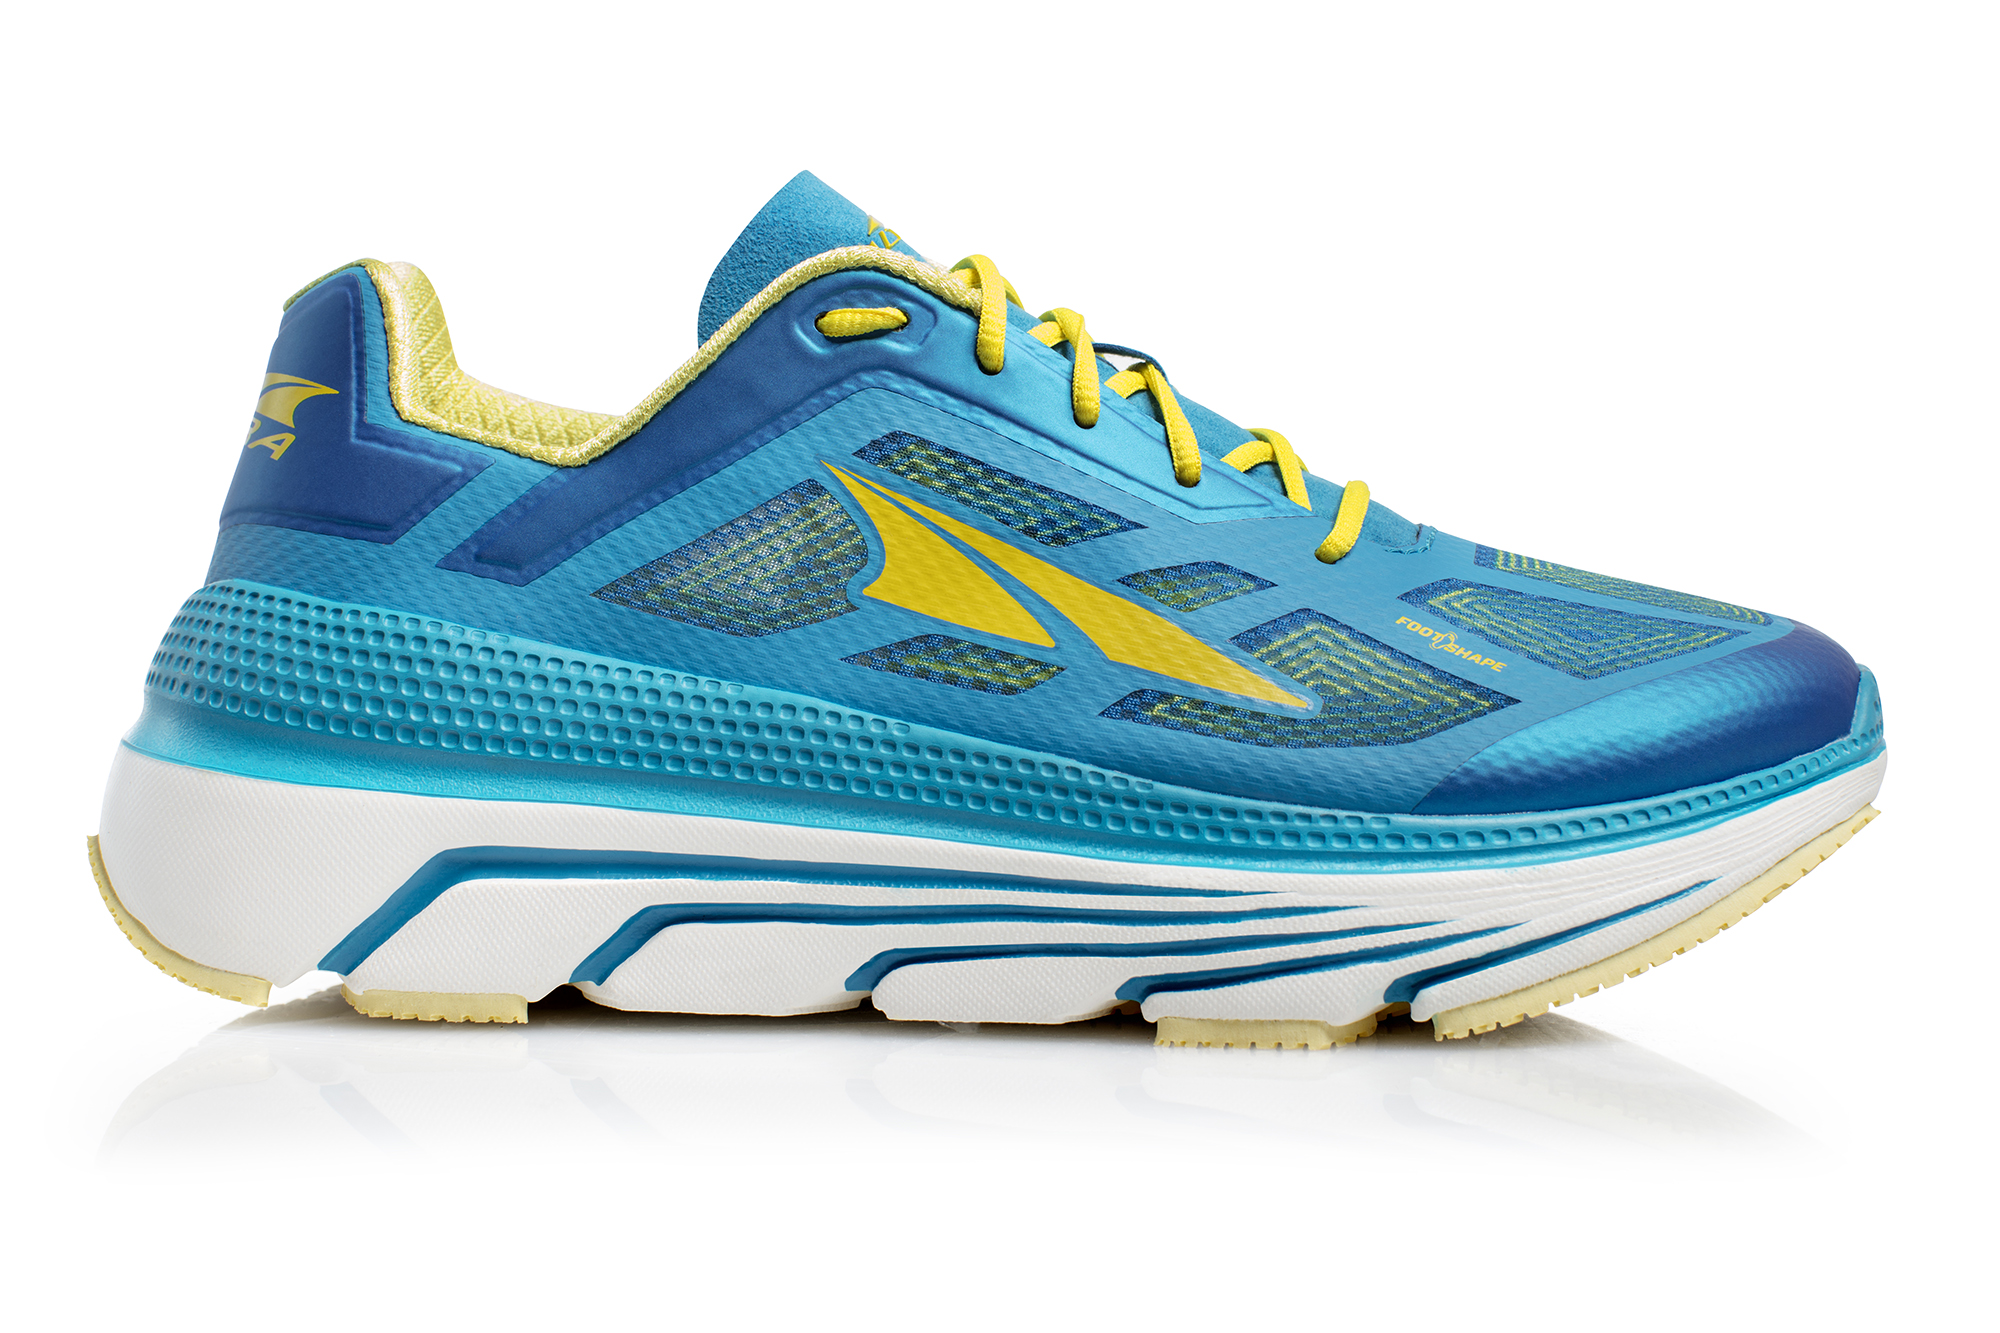 Altra Footwear Announces Three New Road Shoes With A Fast ...